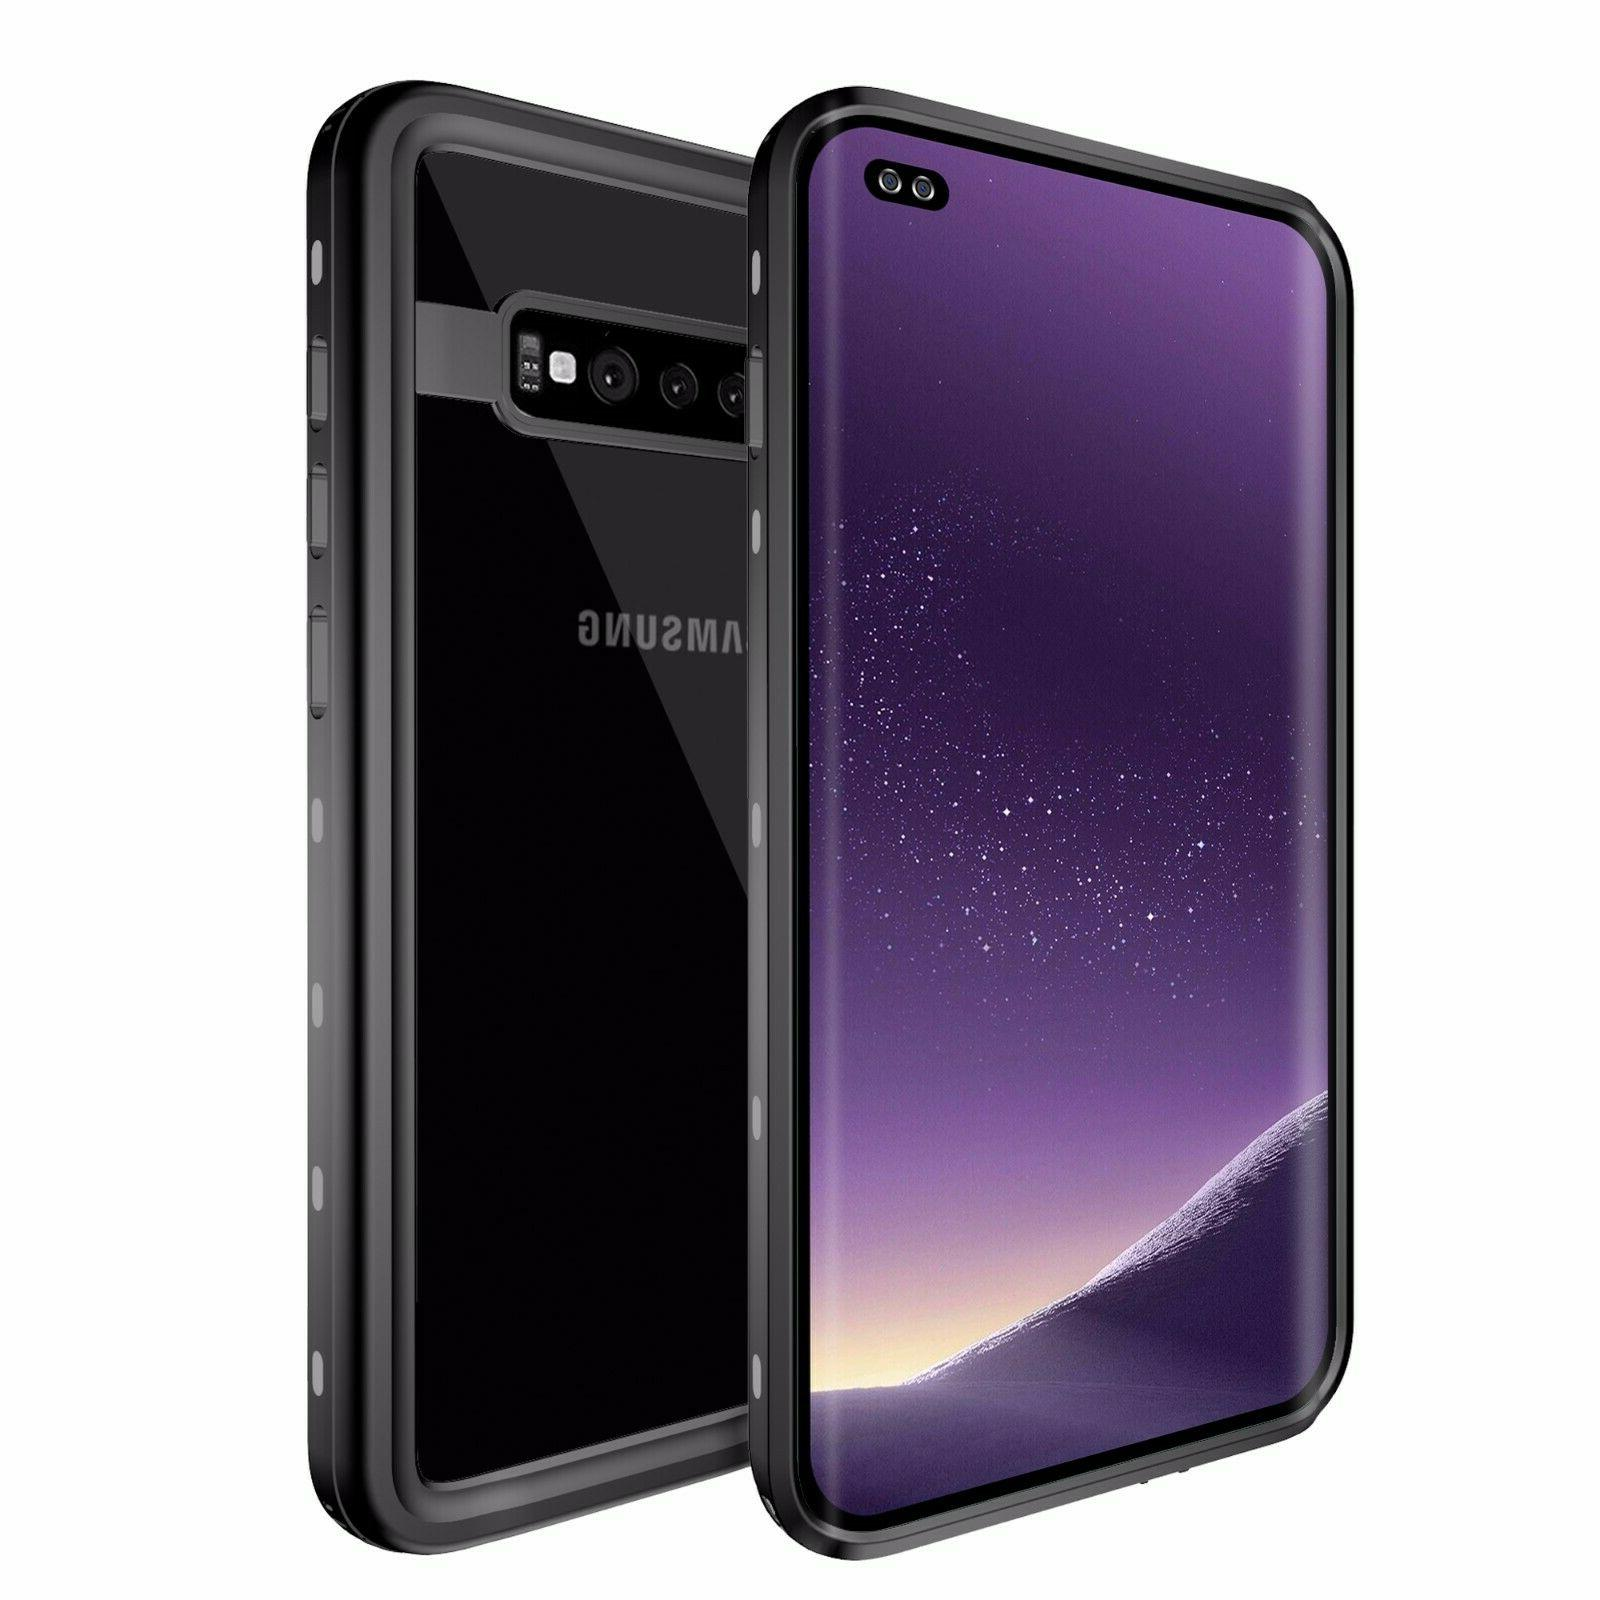 Shockproof Galaxy Plus protector